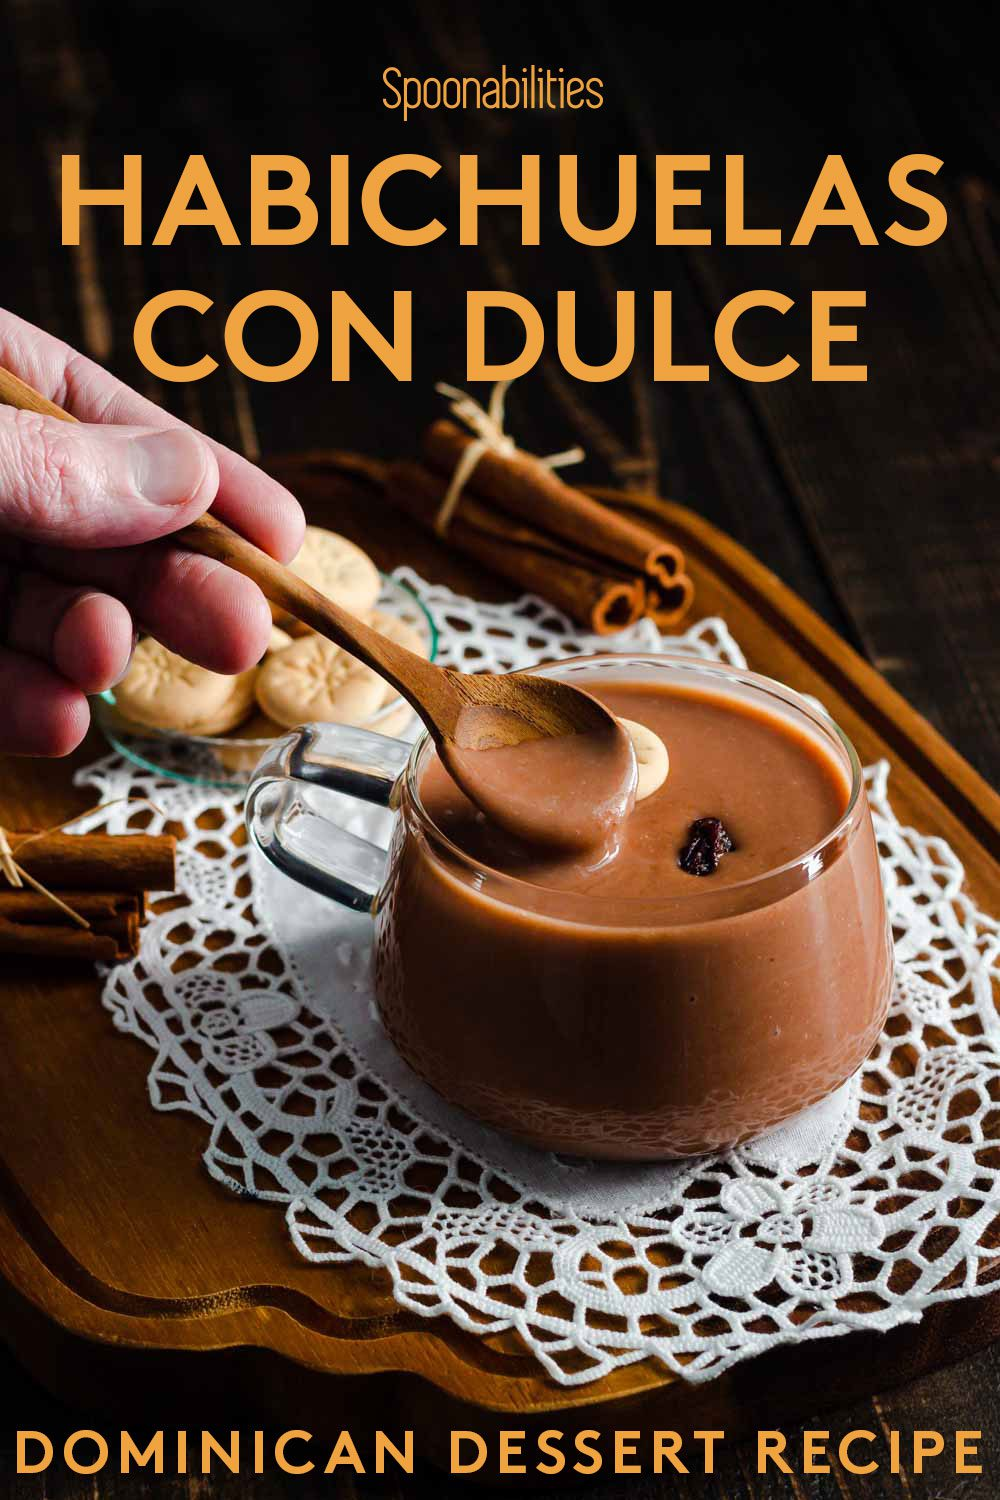 A glass cup on top of a wooden serving board with Habichuelas con dulce. This Dominican Dessert is made out of red kidney beans, coconut milk, evaporated milk, sugar and other spices. Recipe at Spoonabilities.com